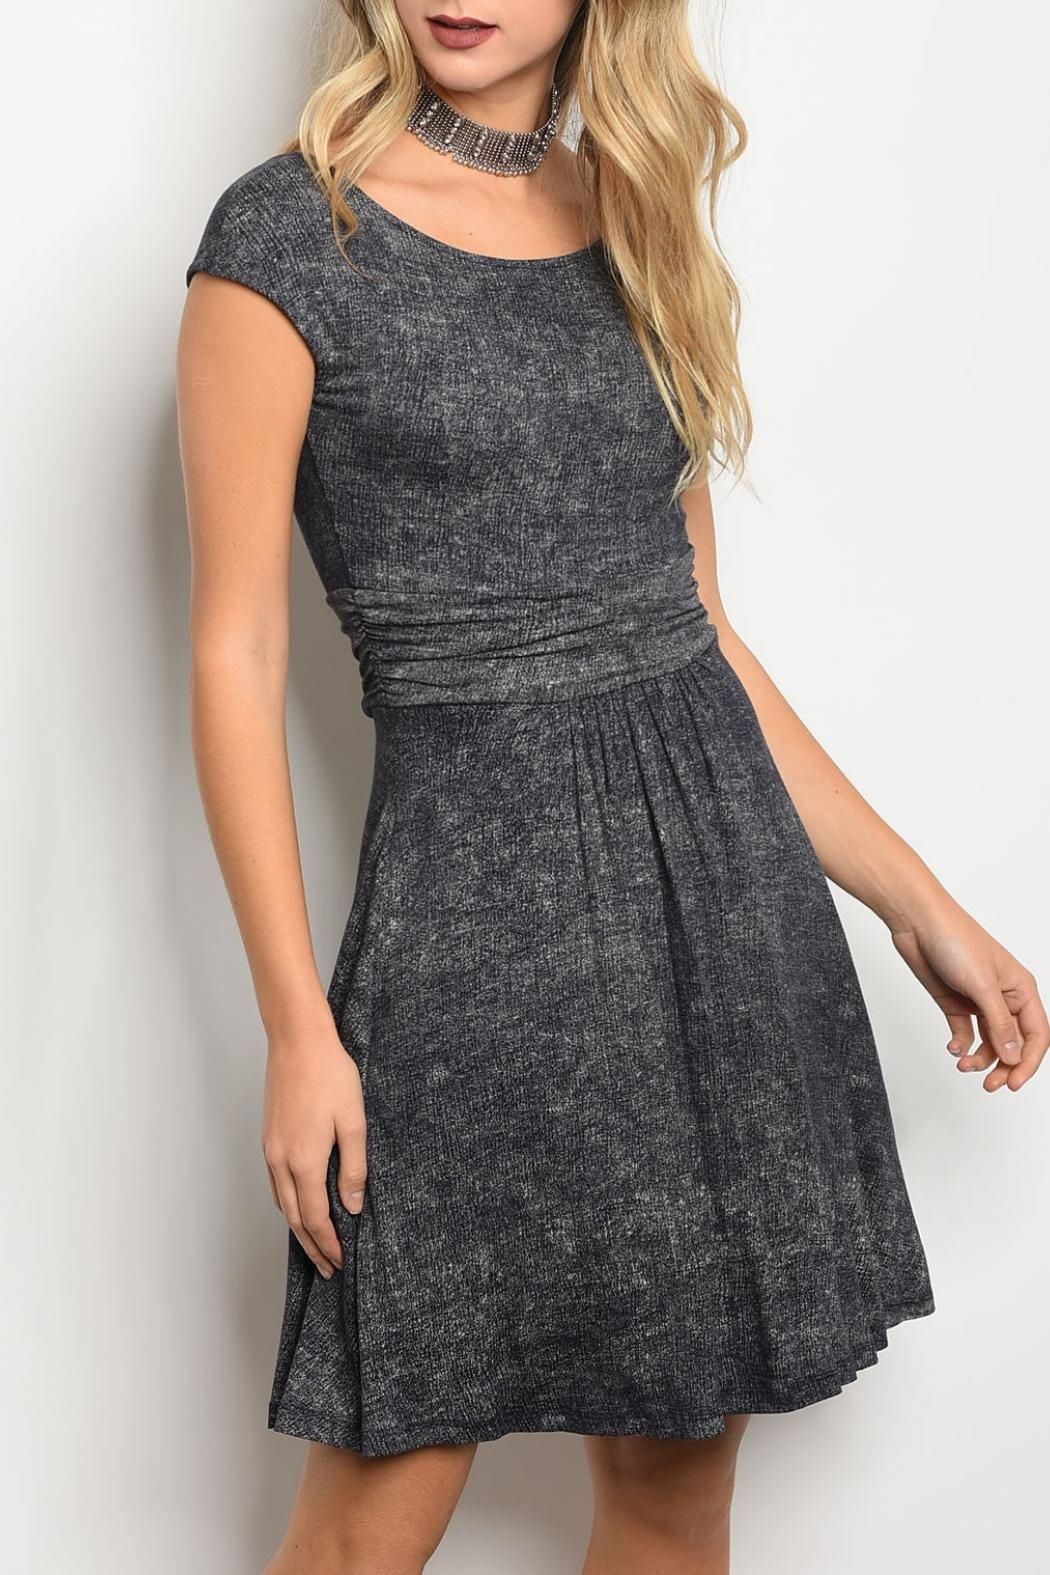 Gilli Navy Wash Dress - Main Image